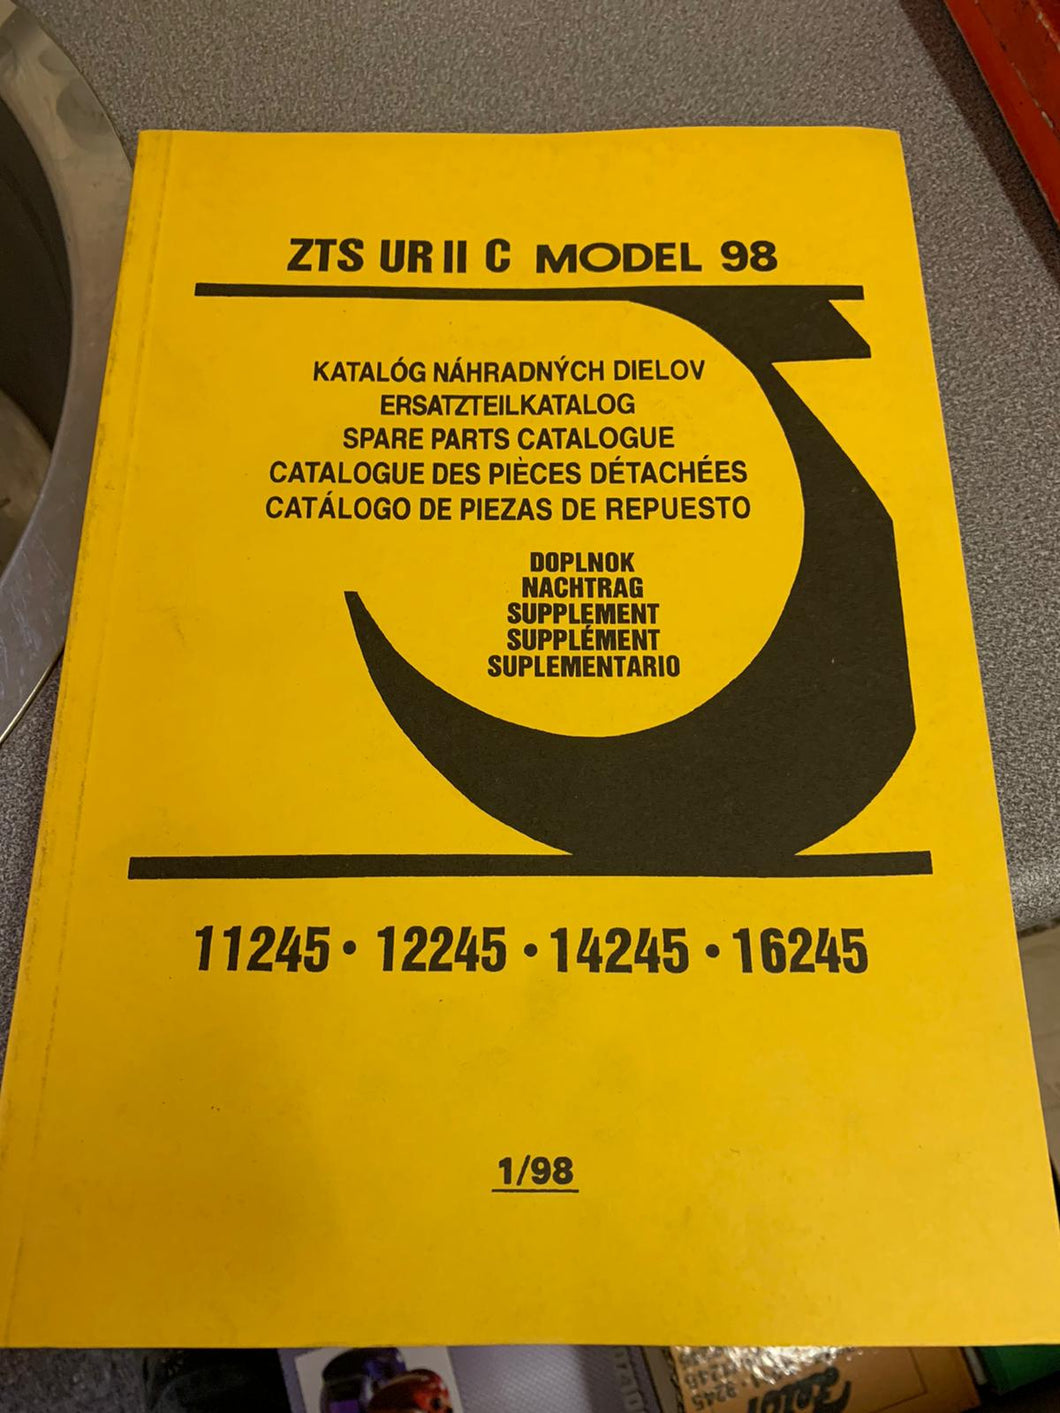 Spare Parts Manual for ZTS 11245, 12245, 14245 and 16245.